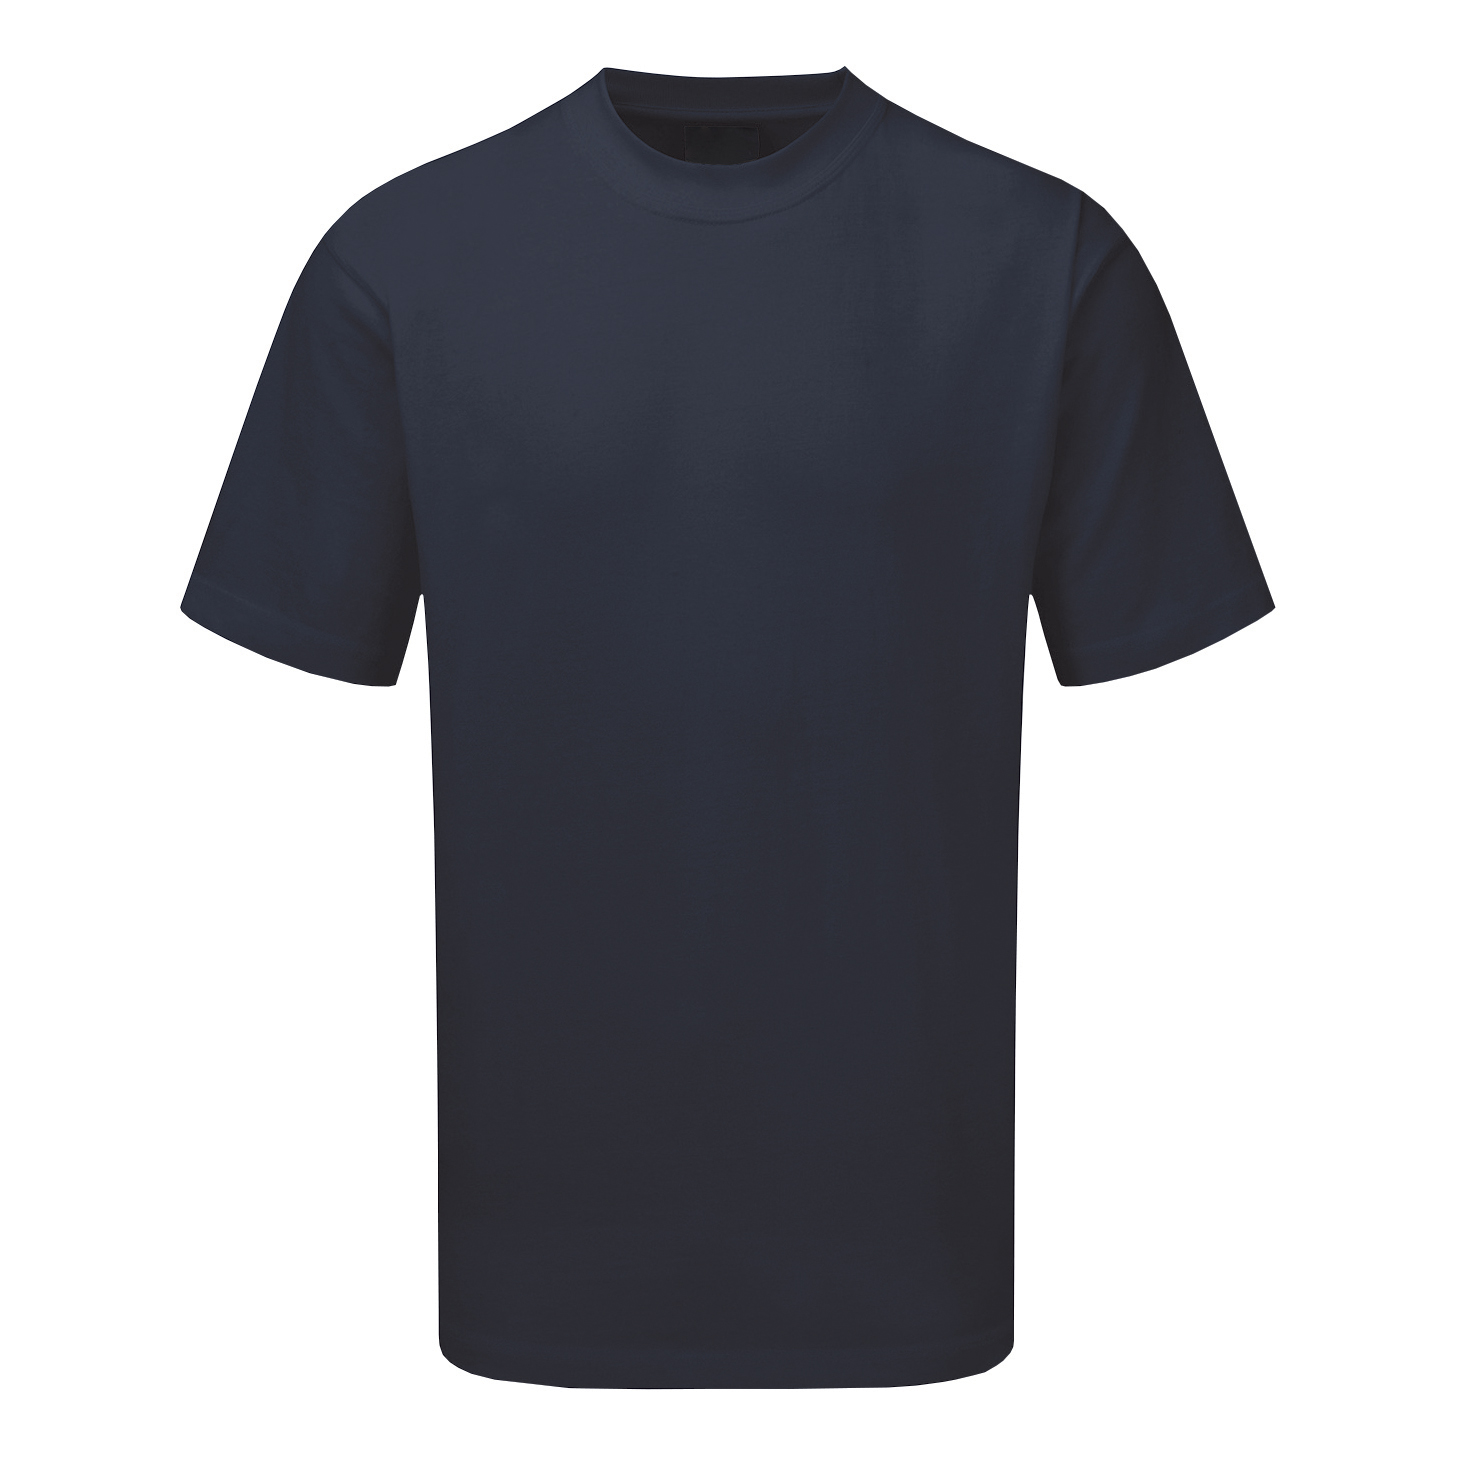 Premium T-Shirt Polycotton Triple Stitched Size 4XL Navy *Approx 3 Day Leadtime*